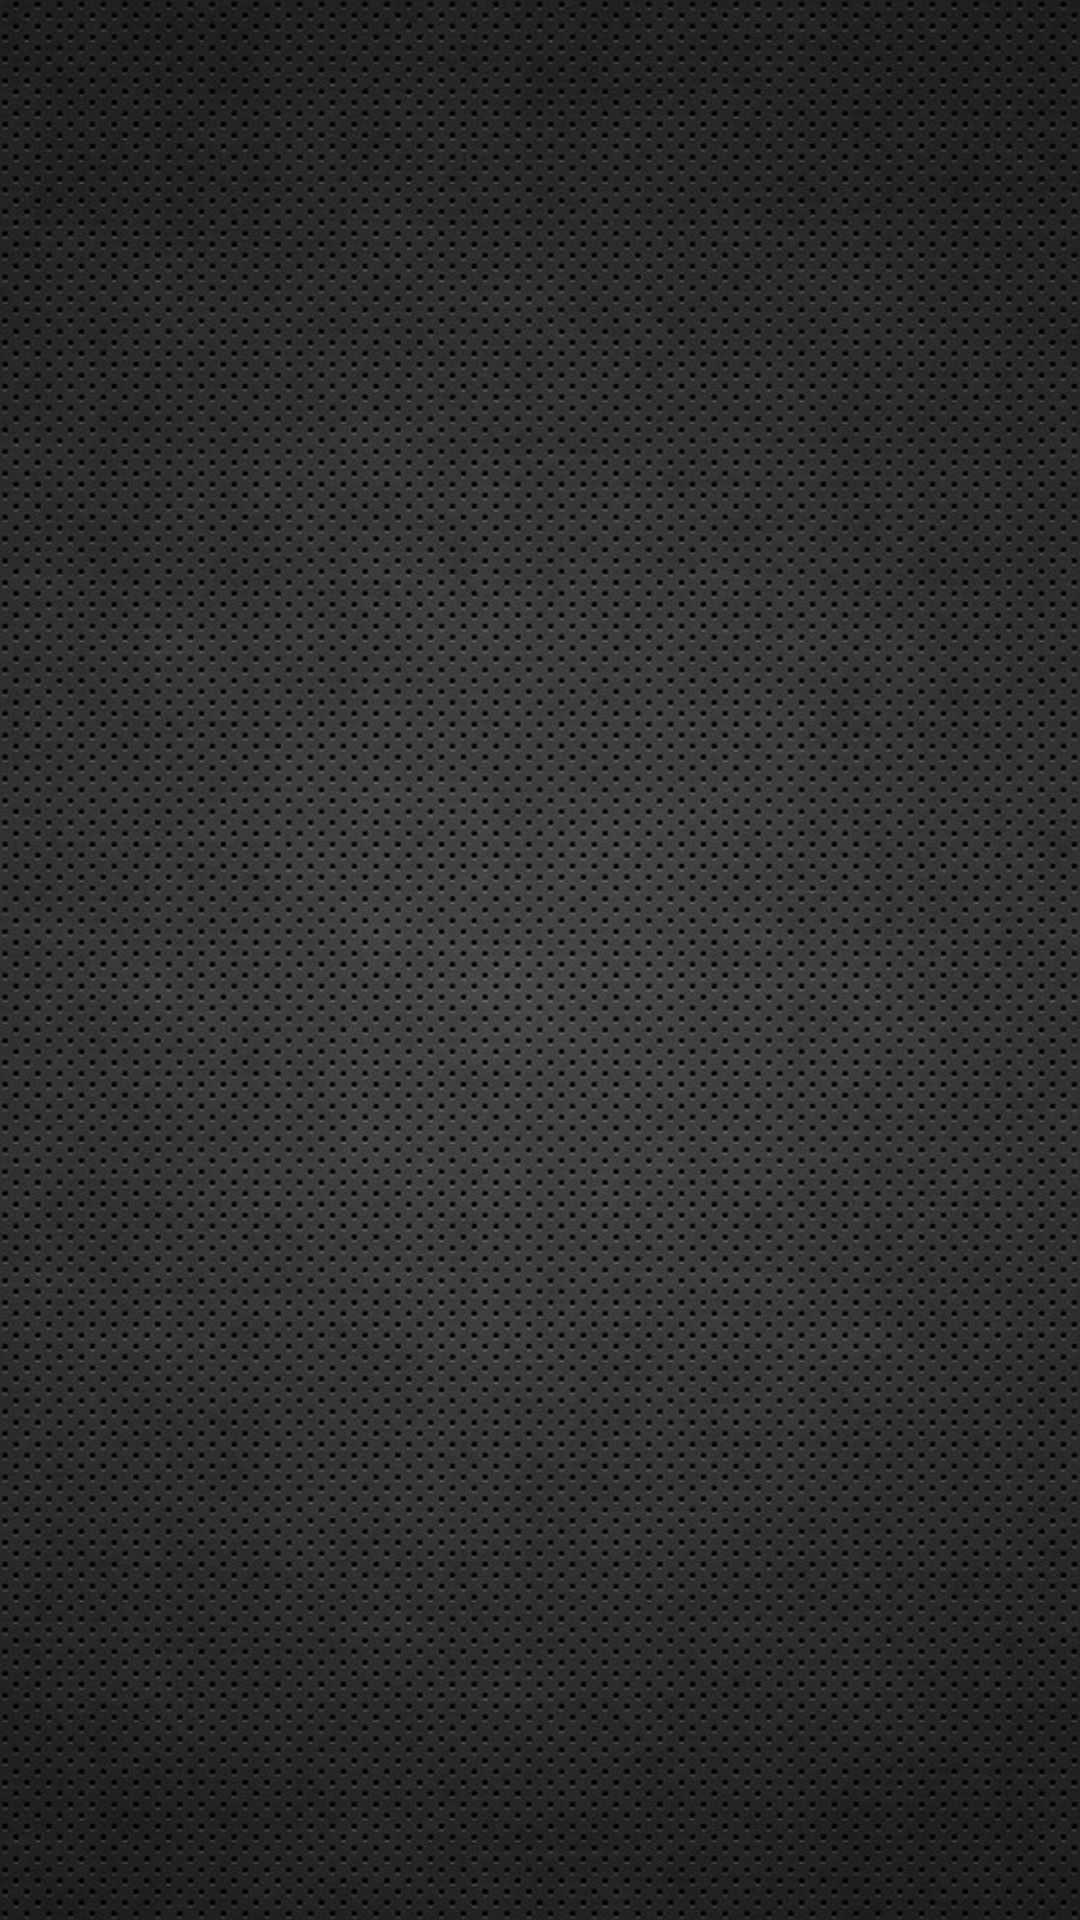 Samsung Galaxy S5 Wallpaper Images 89 Images